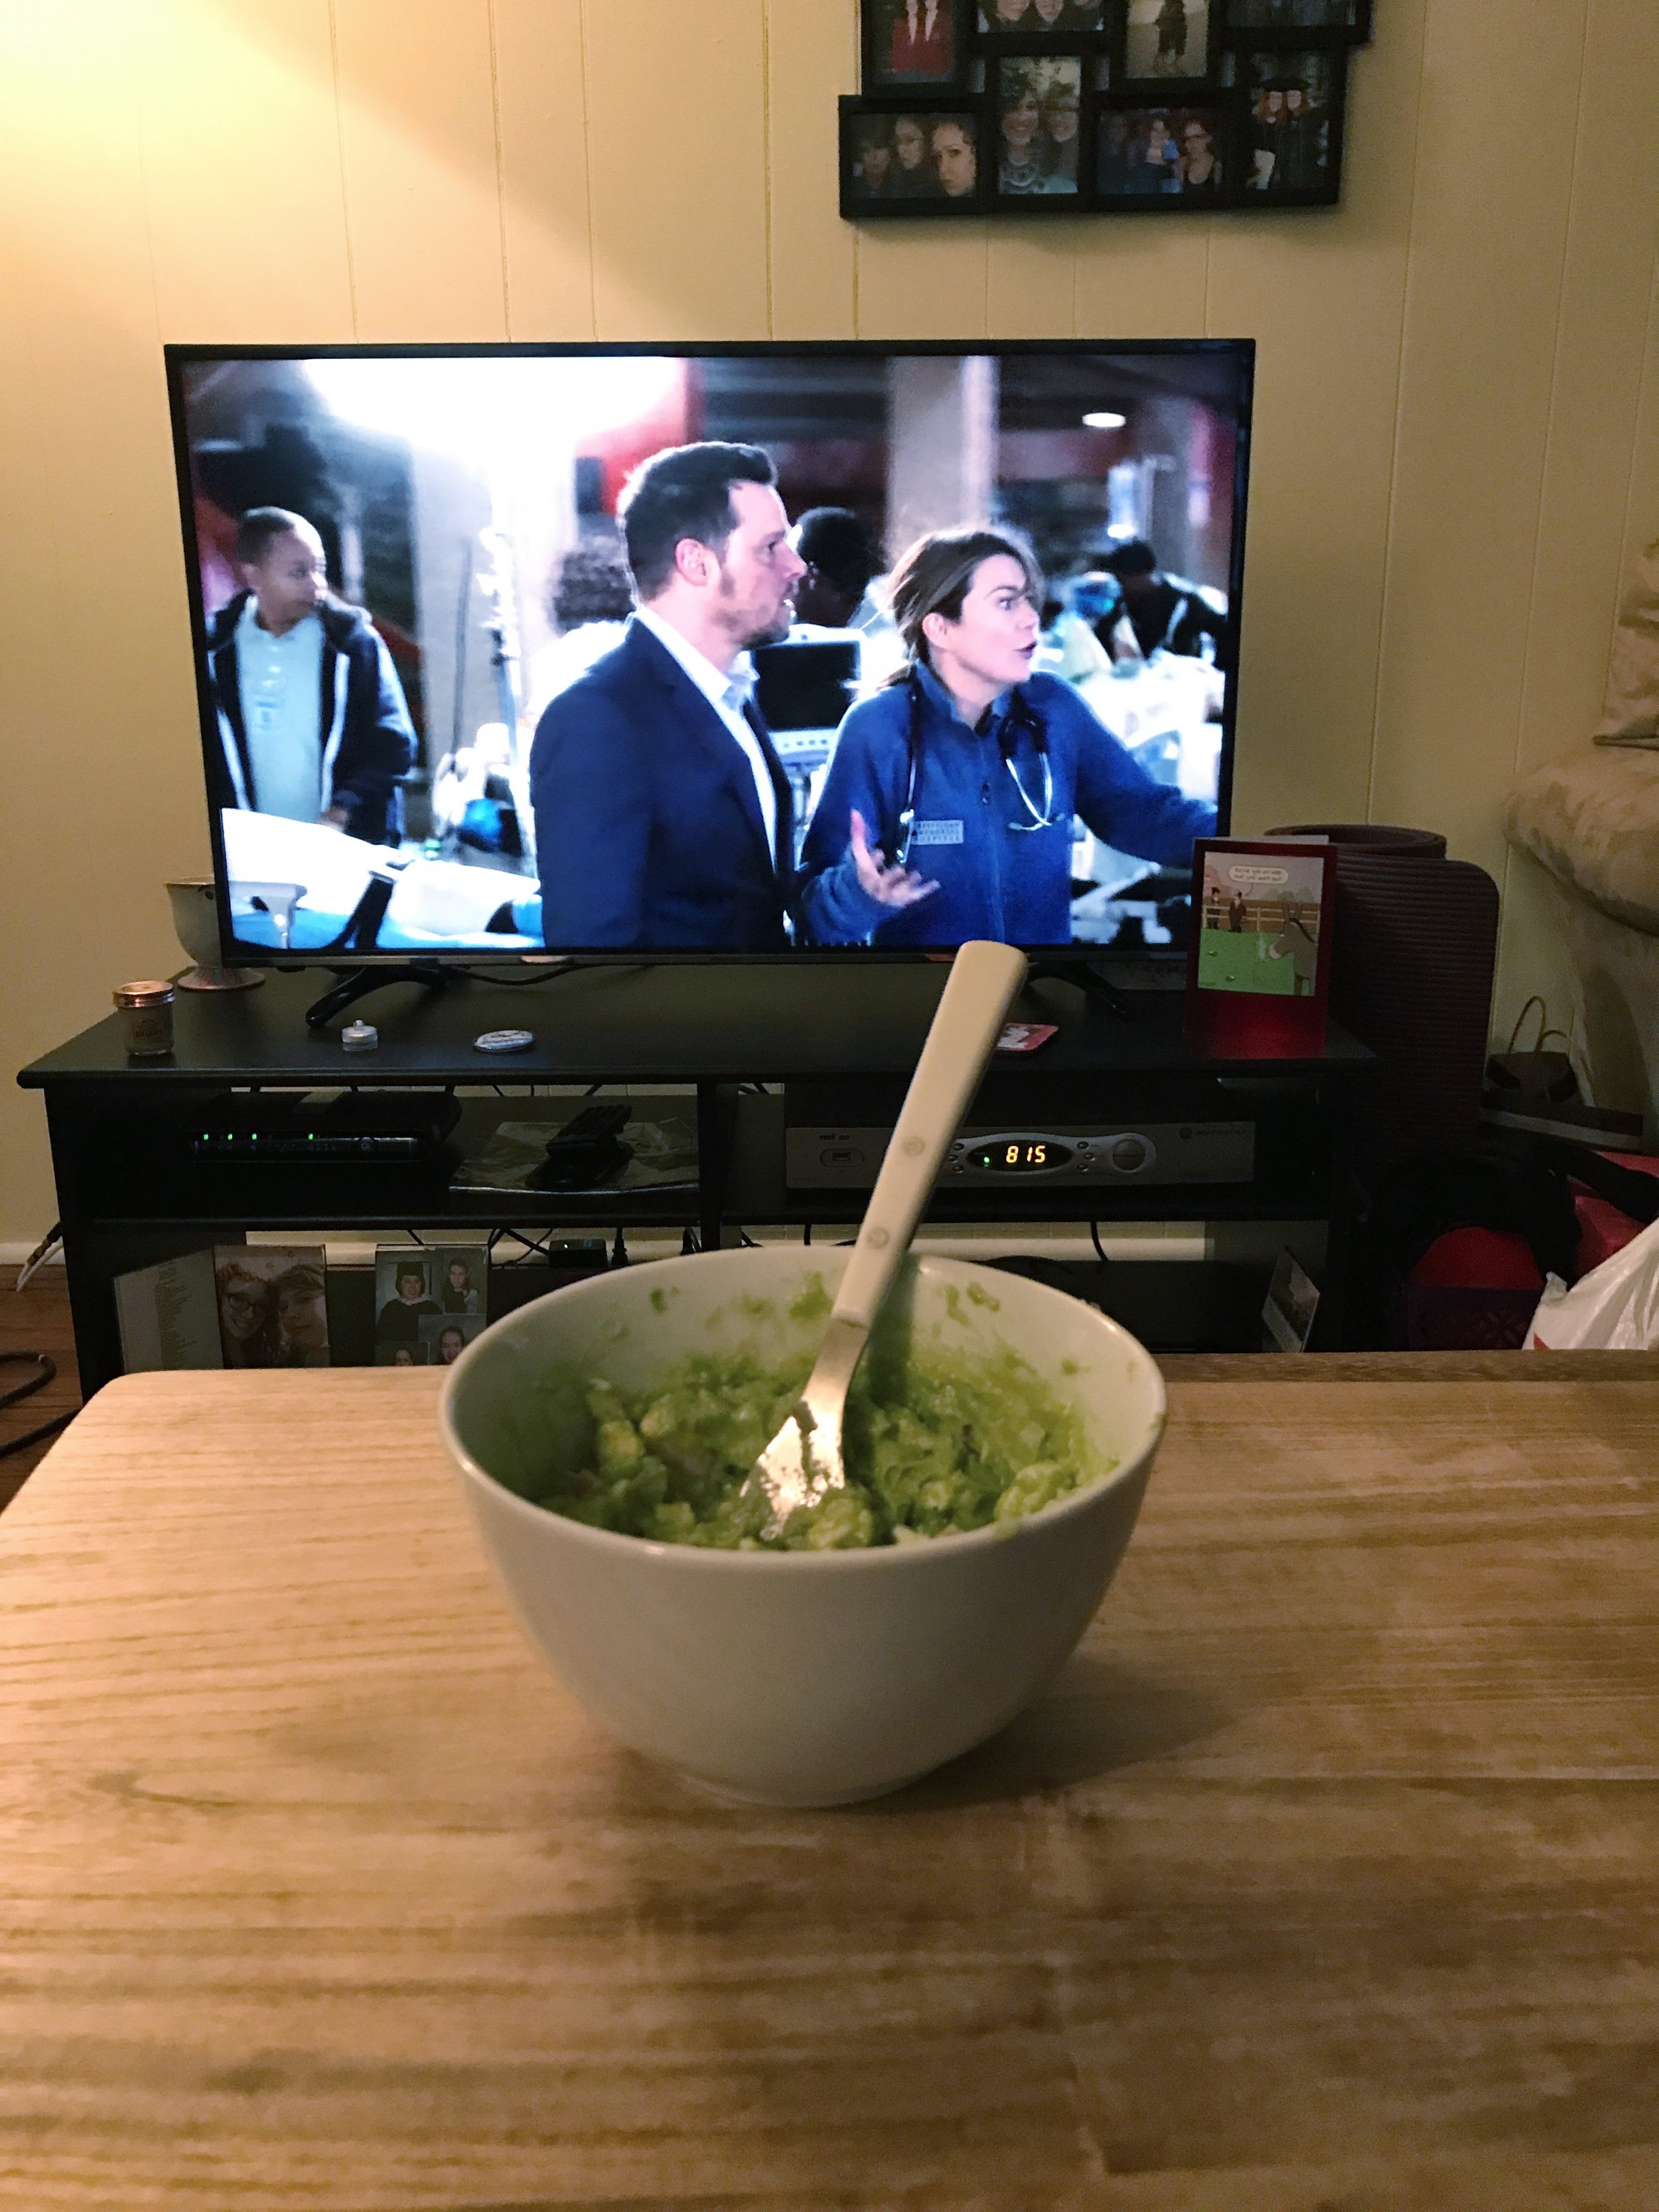 Guac, frenzied Mer, and Alex's 15 second cameo--what's not to love?